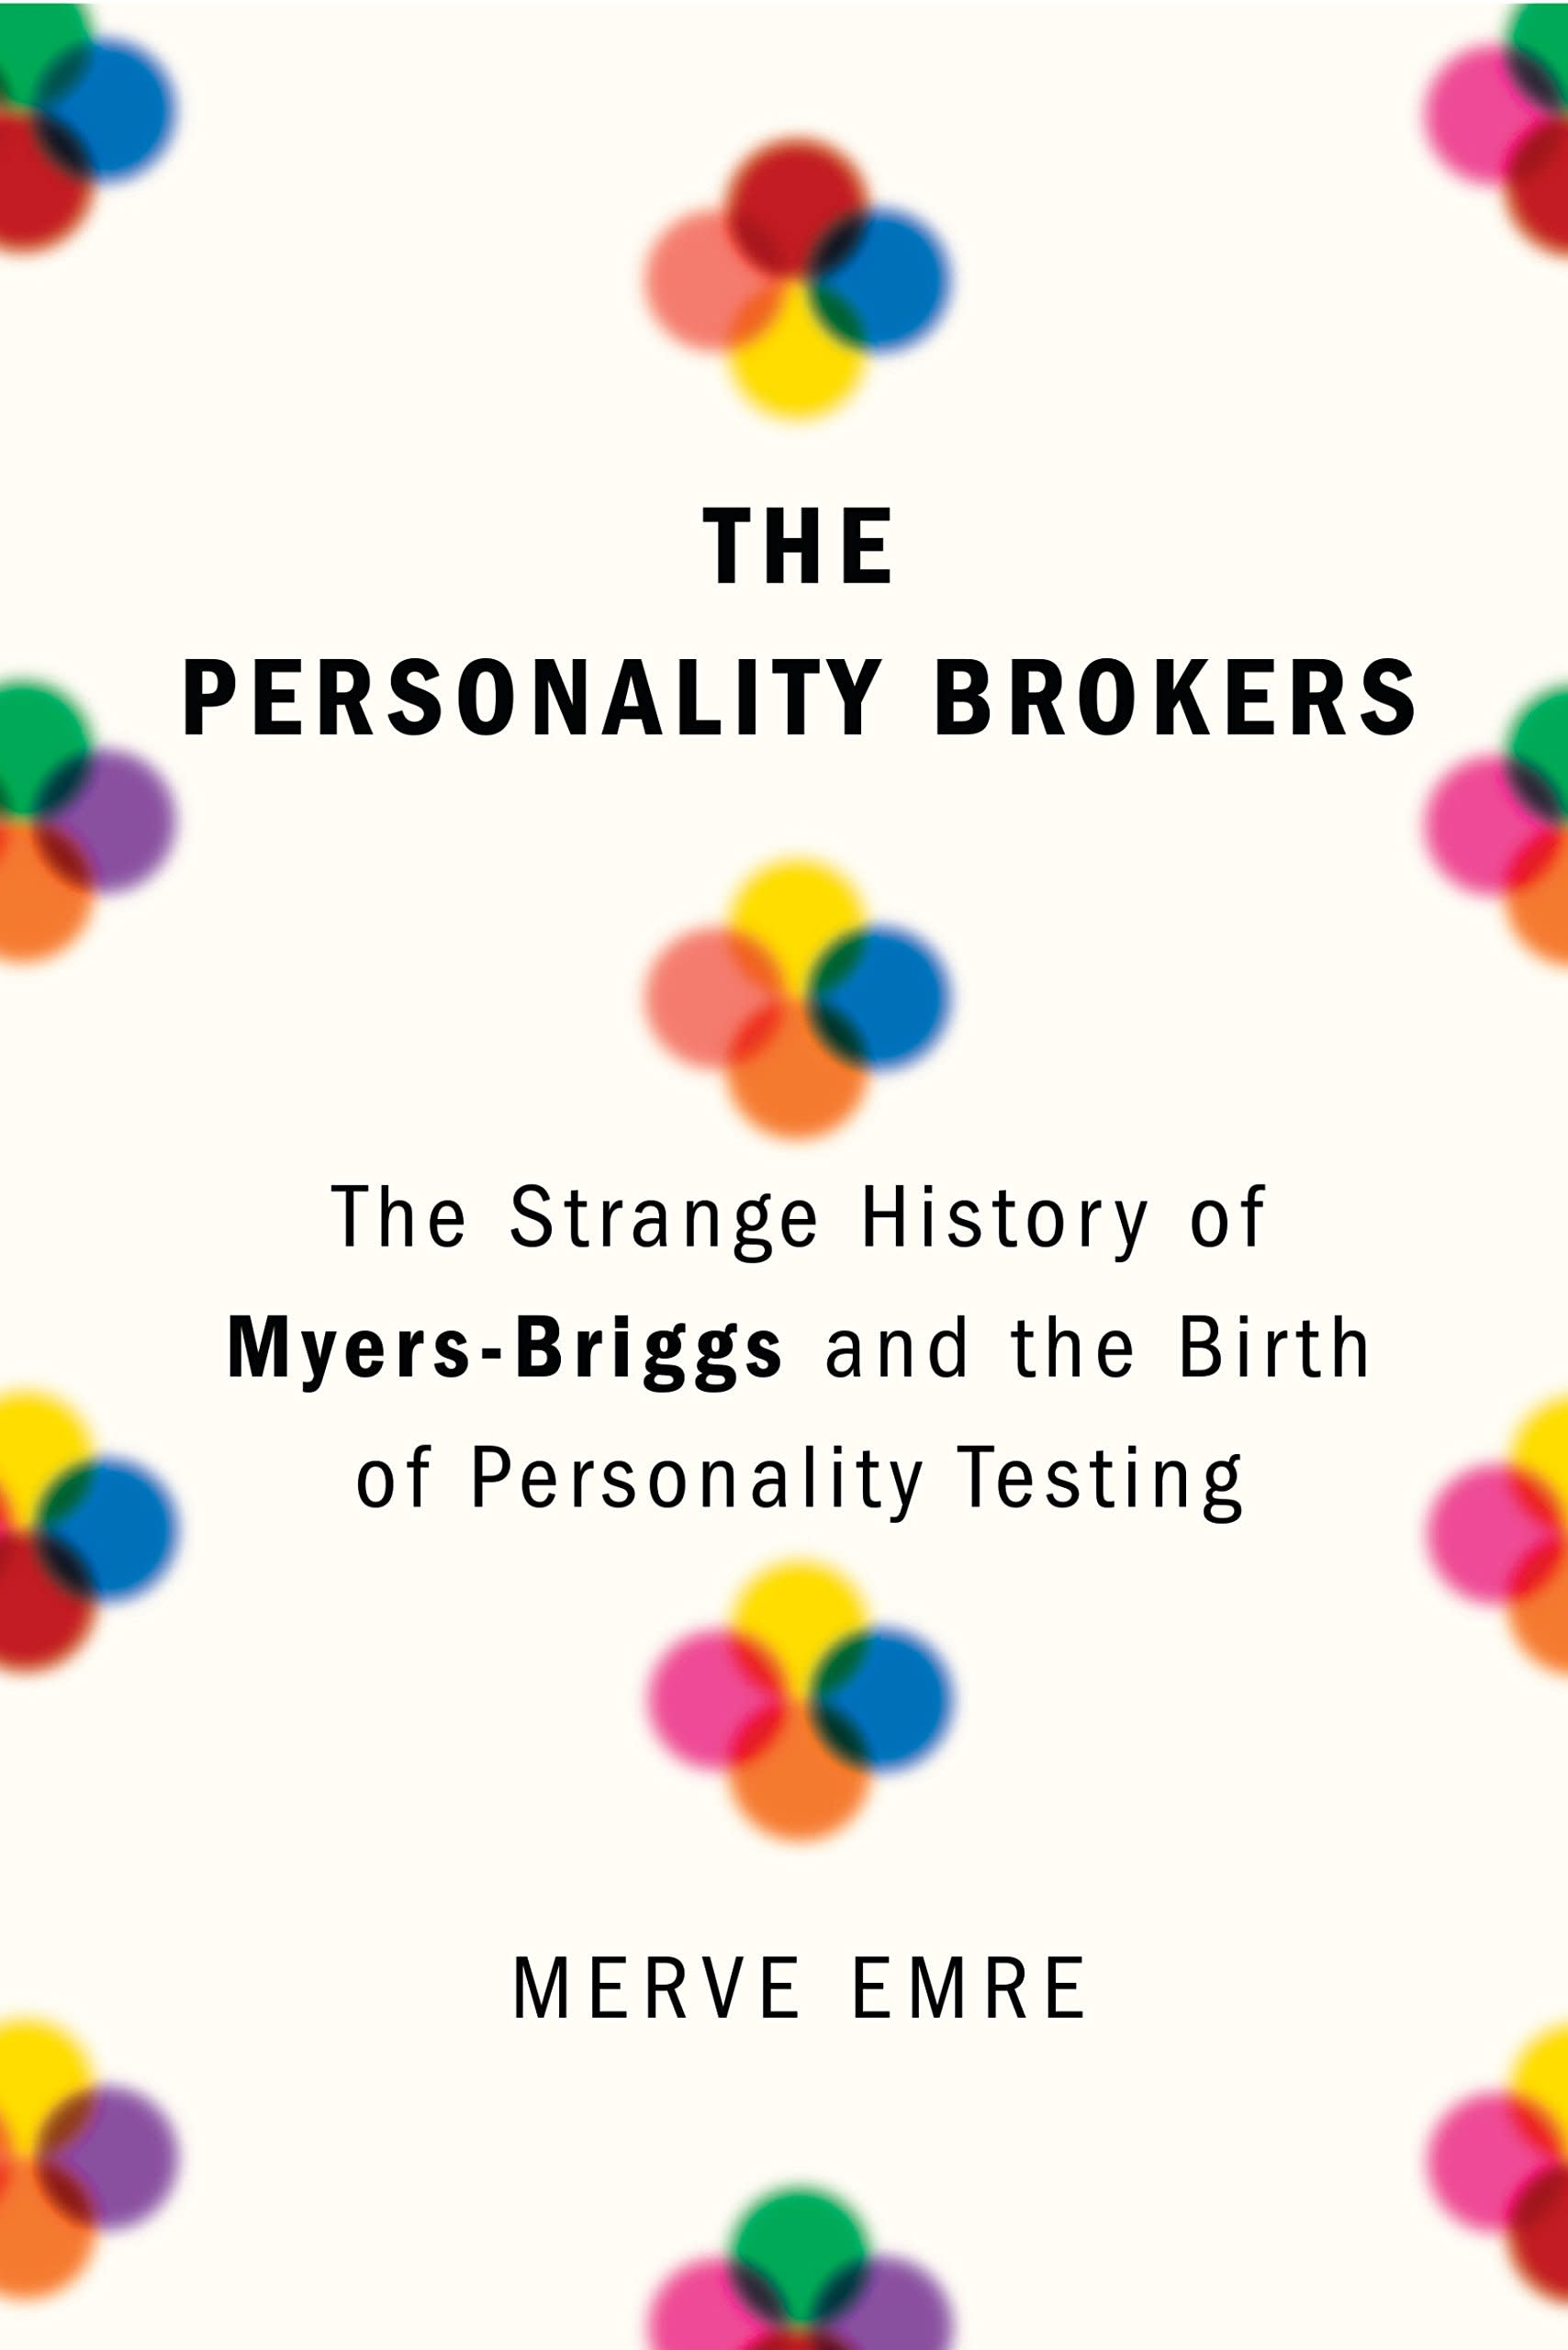 One time use: The personality brokers cover